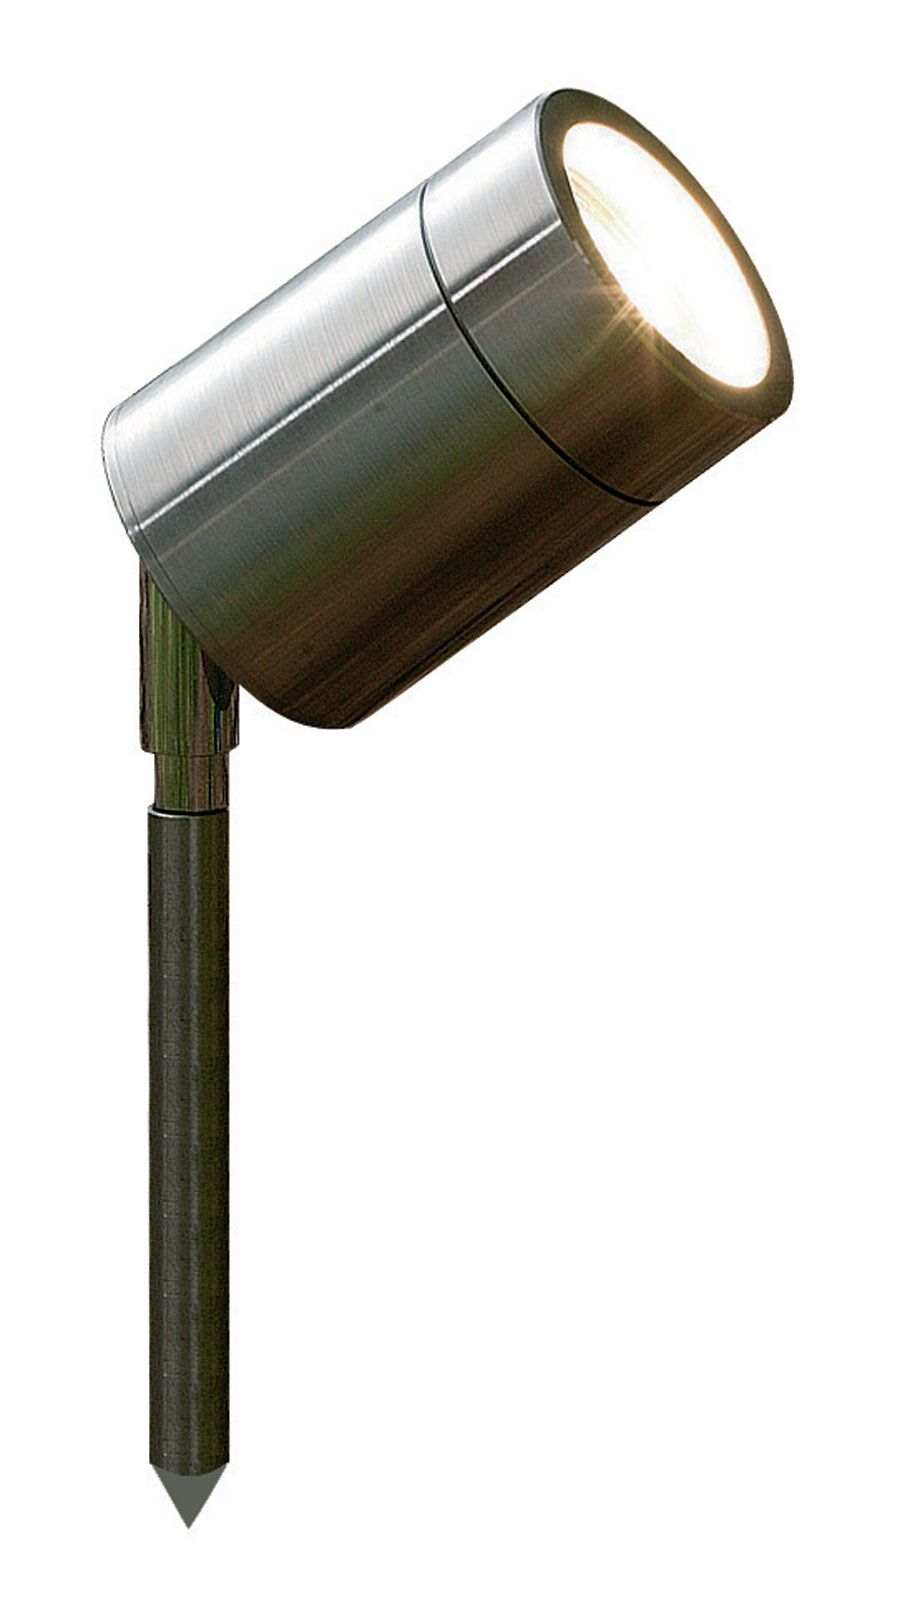 17 Best images about Garden Lighting on Pinterest | Polymers, Compact and  Techno